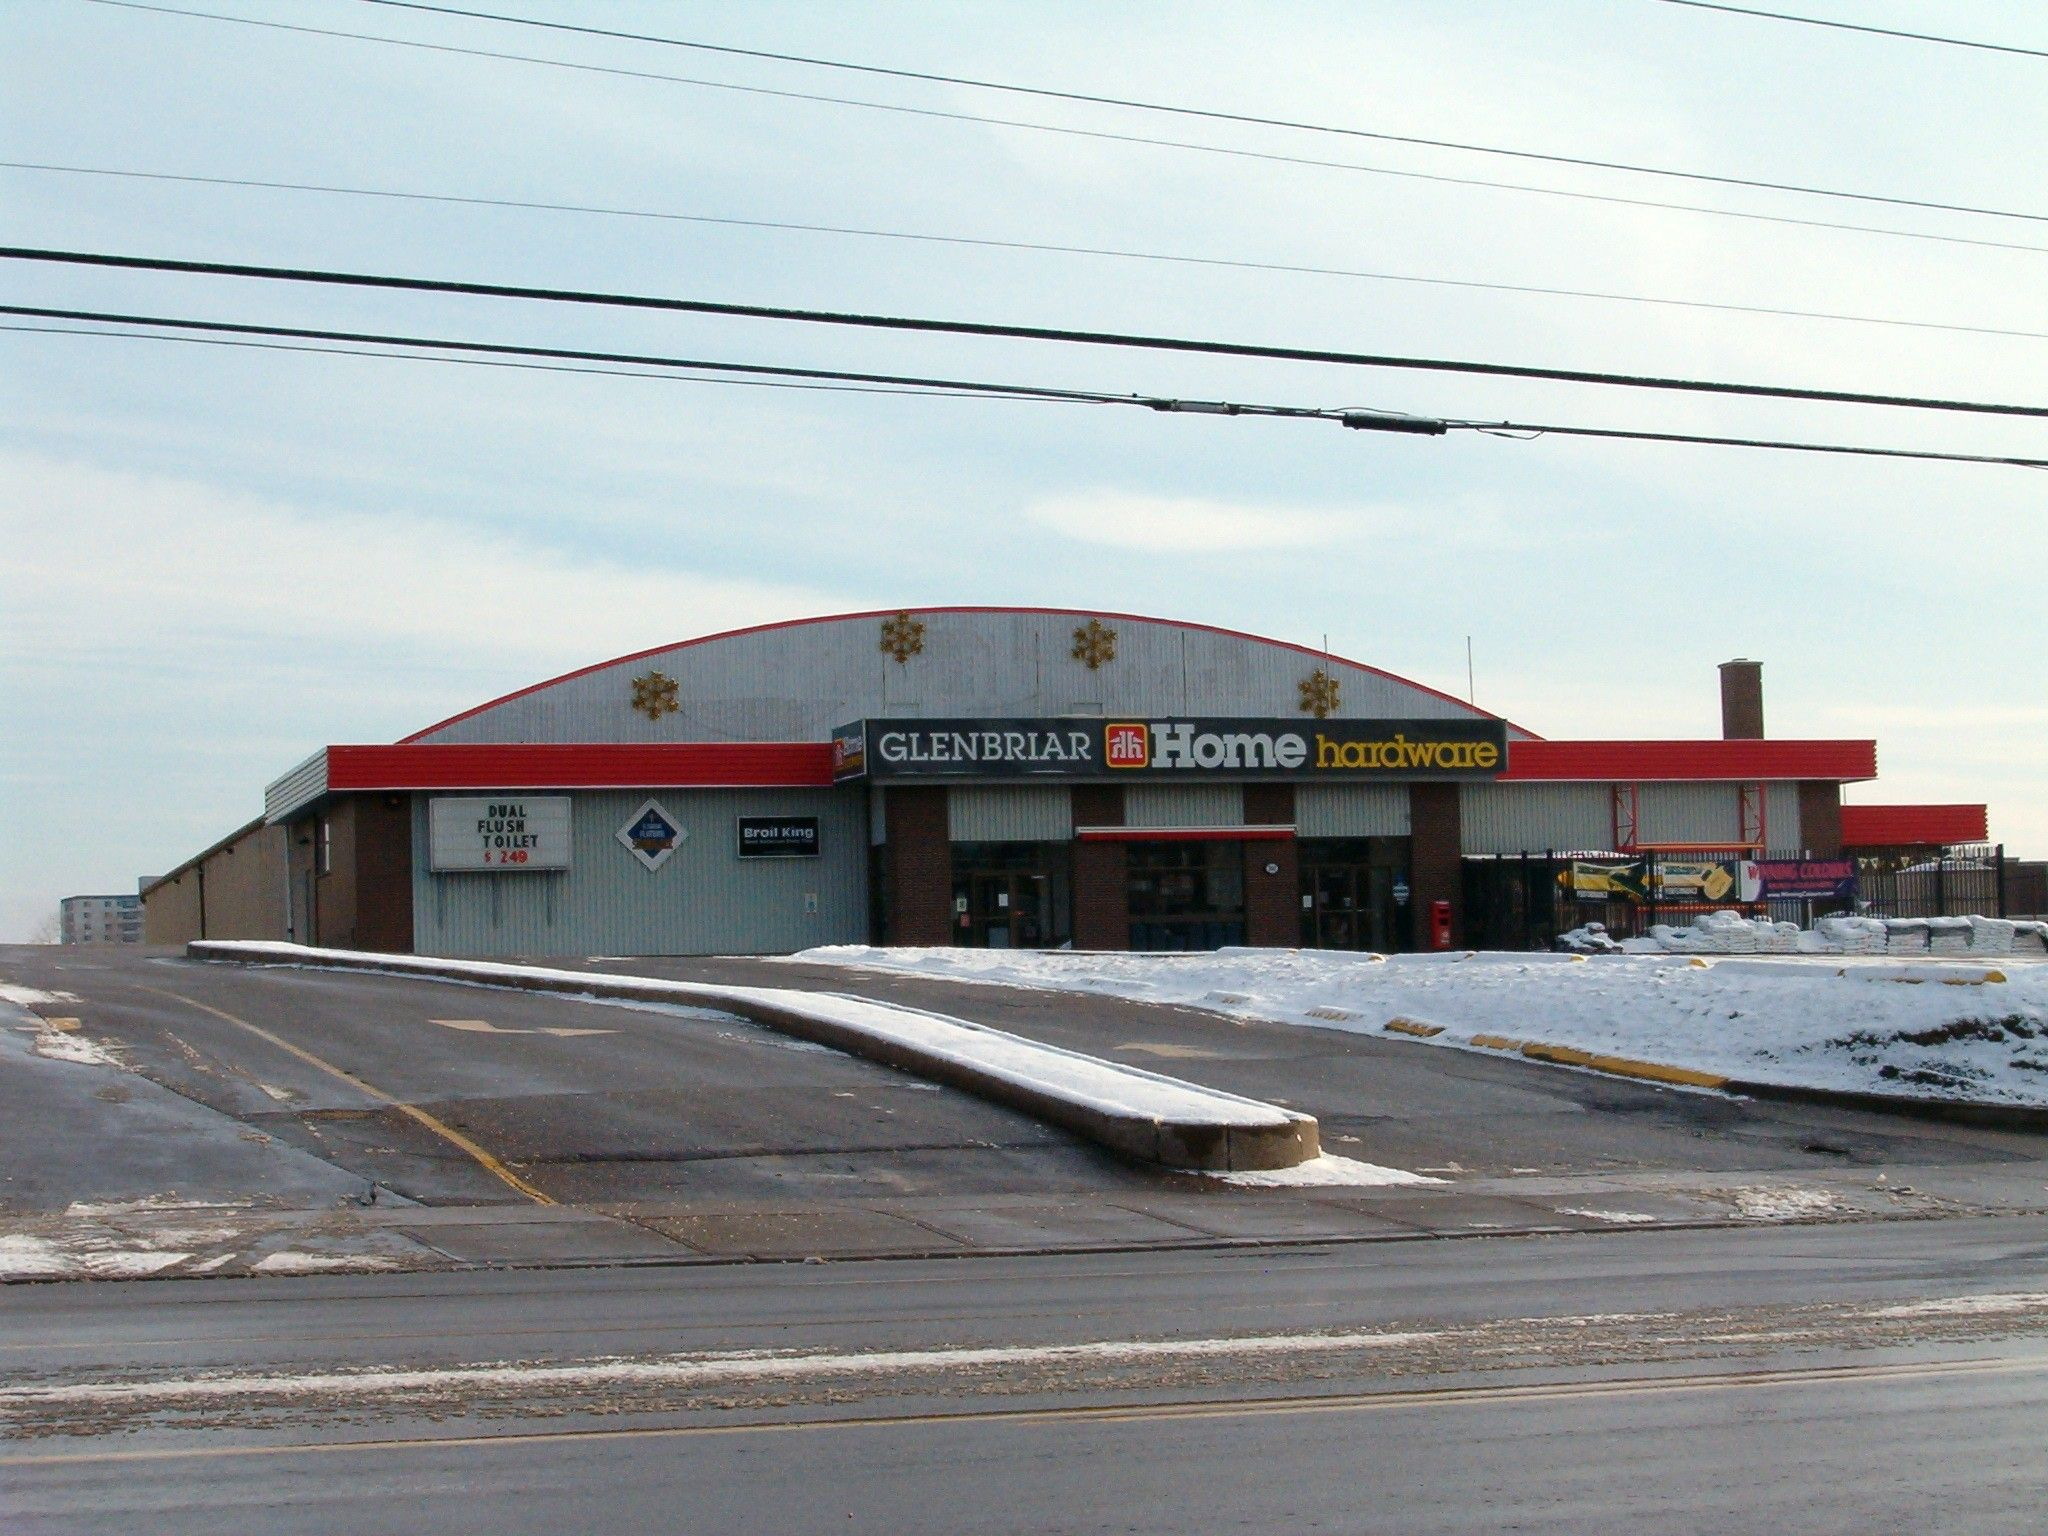 The Glenbriar was a roller rink in the 1960's, and occasionally a music venue.  Located on Weber Street in Waterloo, this building is now a hardware store.